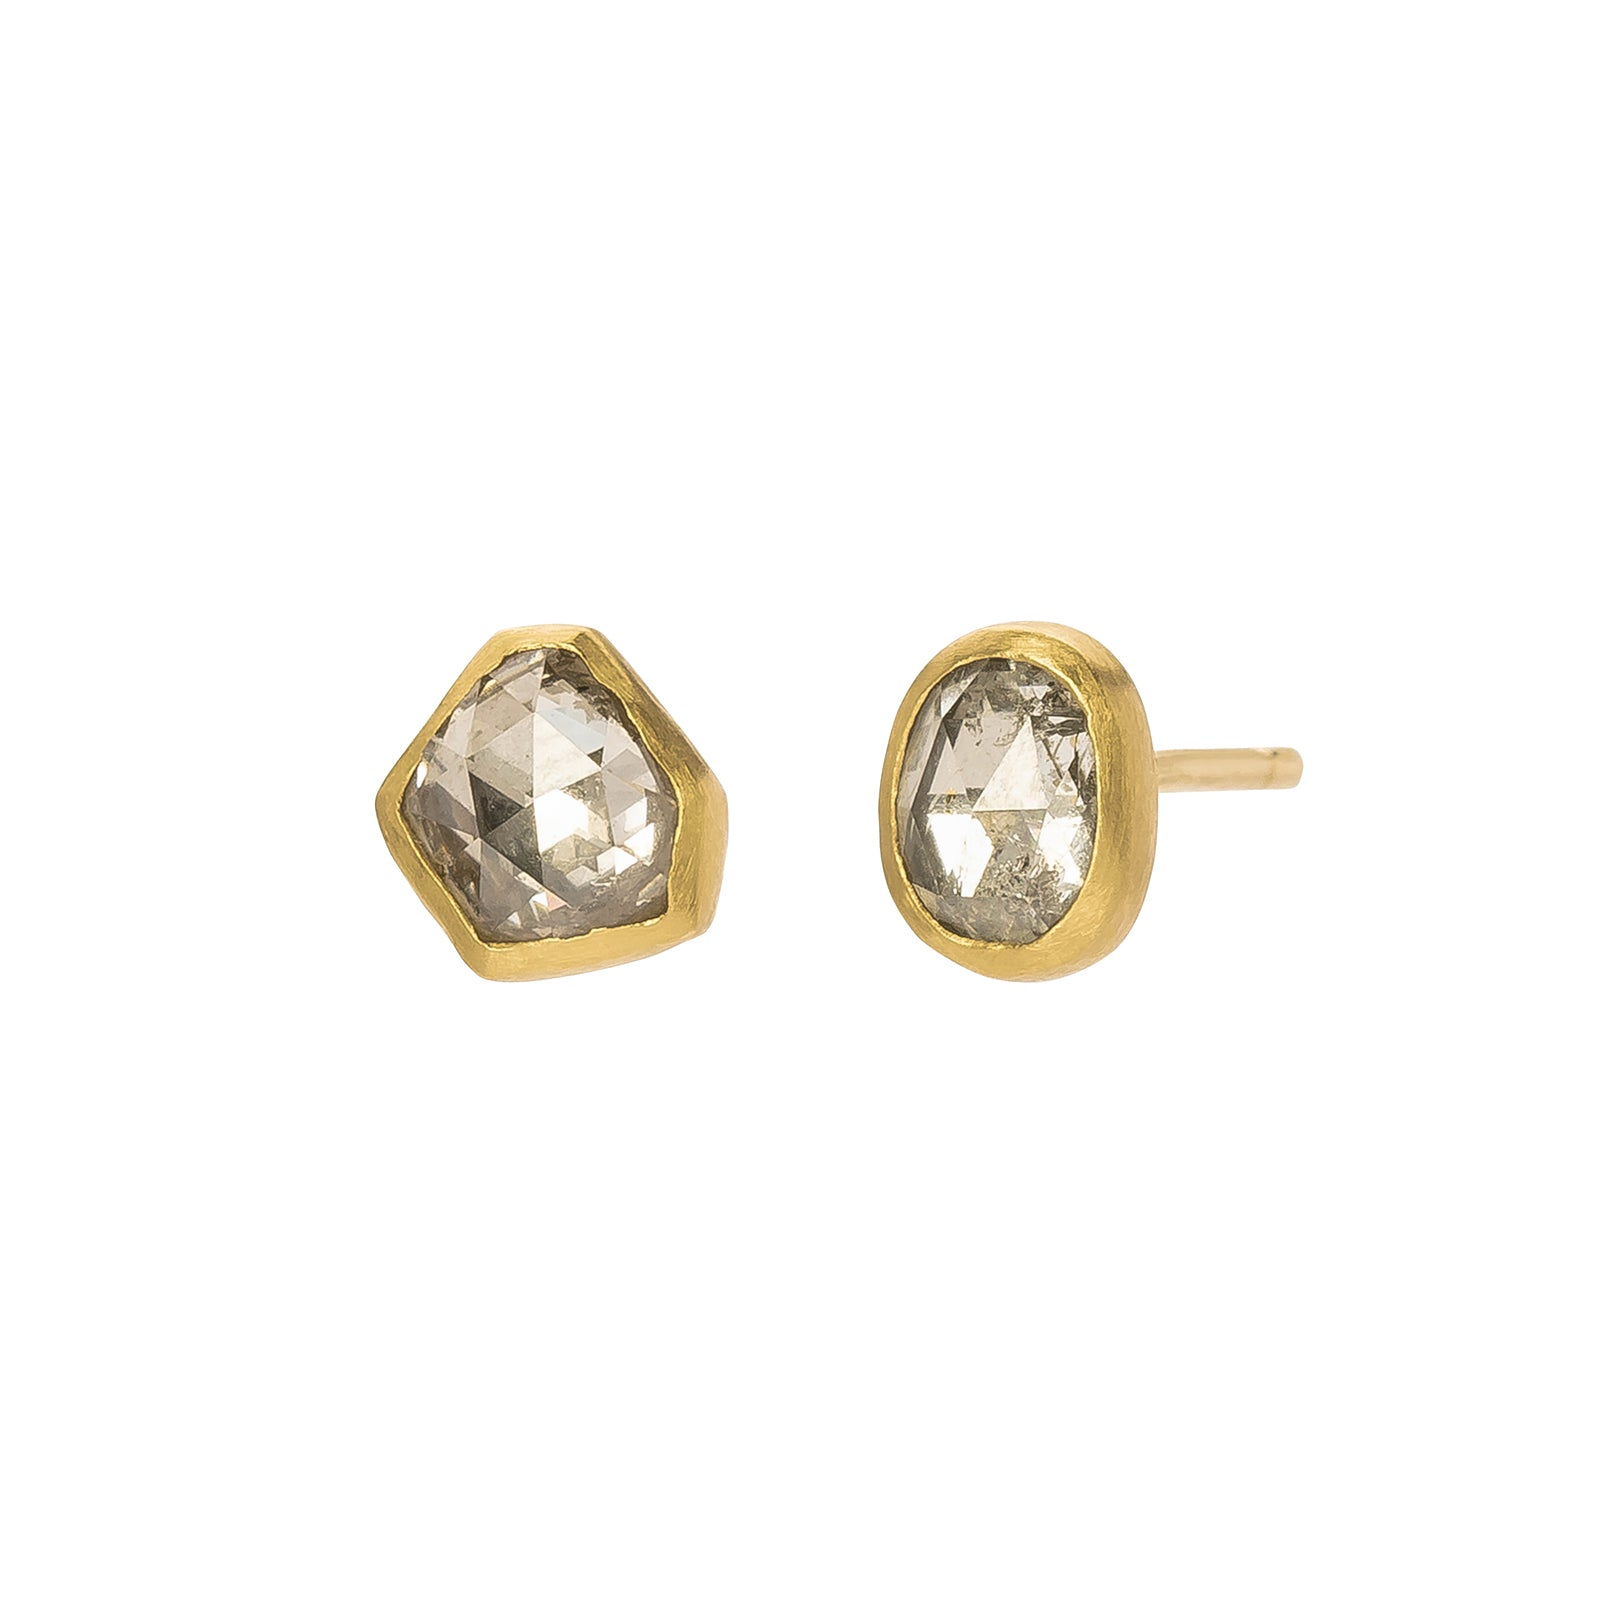 Eli Halili Bezel Studs - Diamond - Earrings - Broken English Jewelry